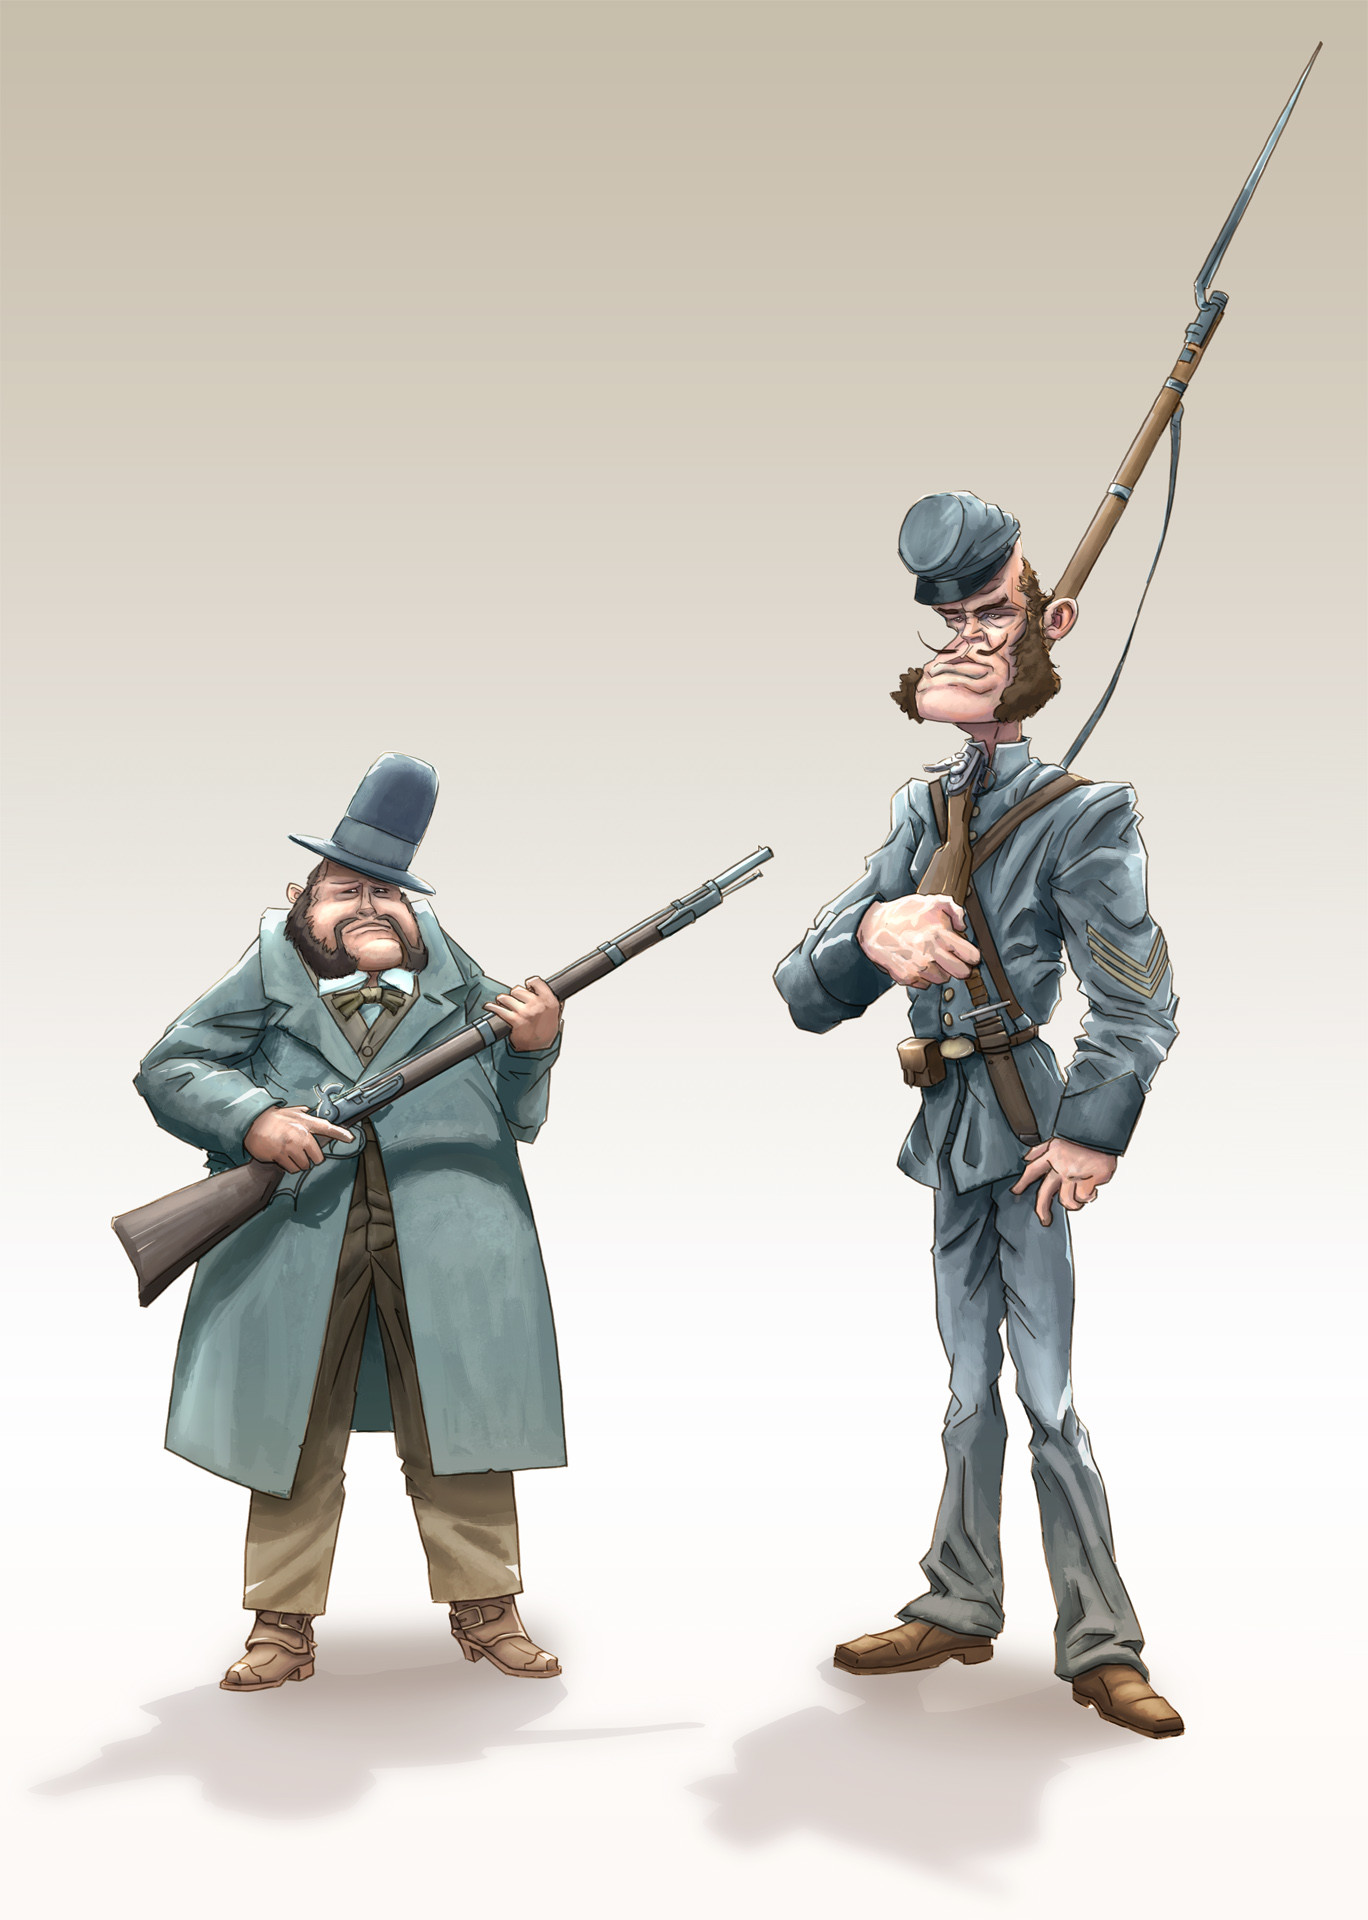 The Lawmen: Major Dingston and his adjutant Ex- Sgt. Taylor